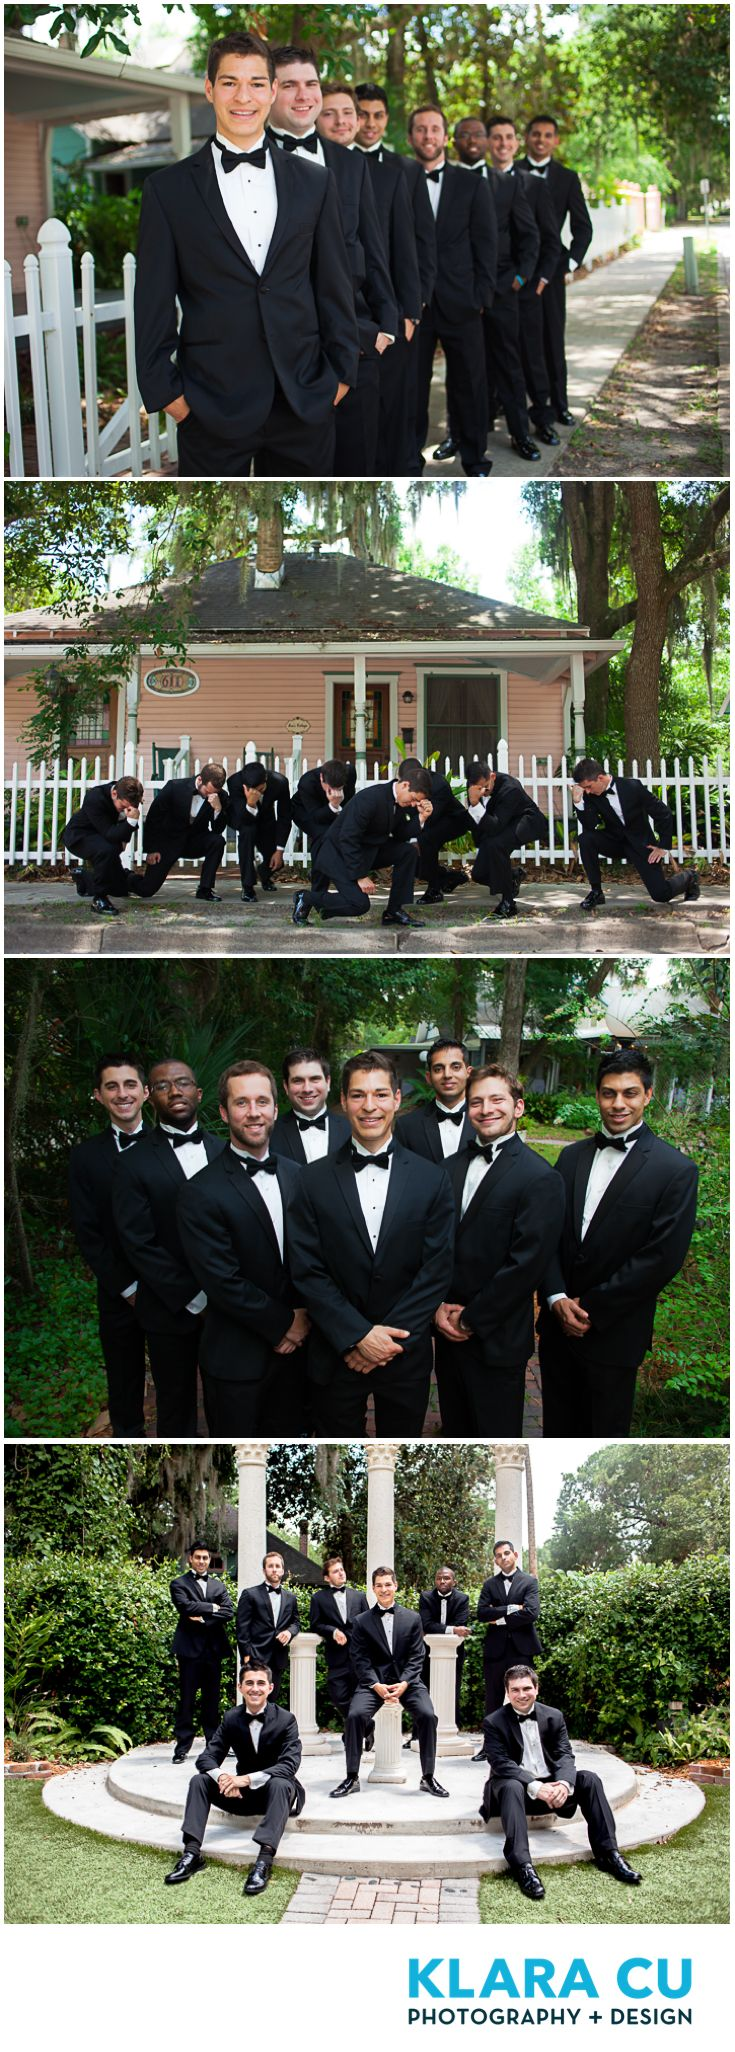 Formal Portrait Of Groomsmen At The Sweetwater Branch Inn In Gainesville Fl Klara Cu Photograph With Images Amazing Wedding Photos Bride Photoshoot Wedding Party Photos